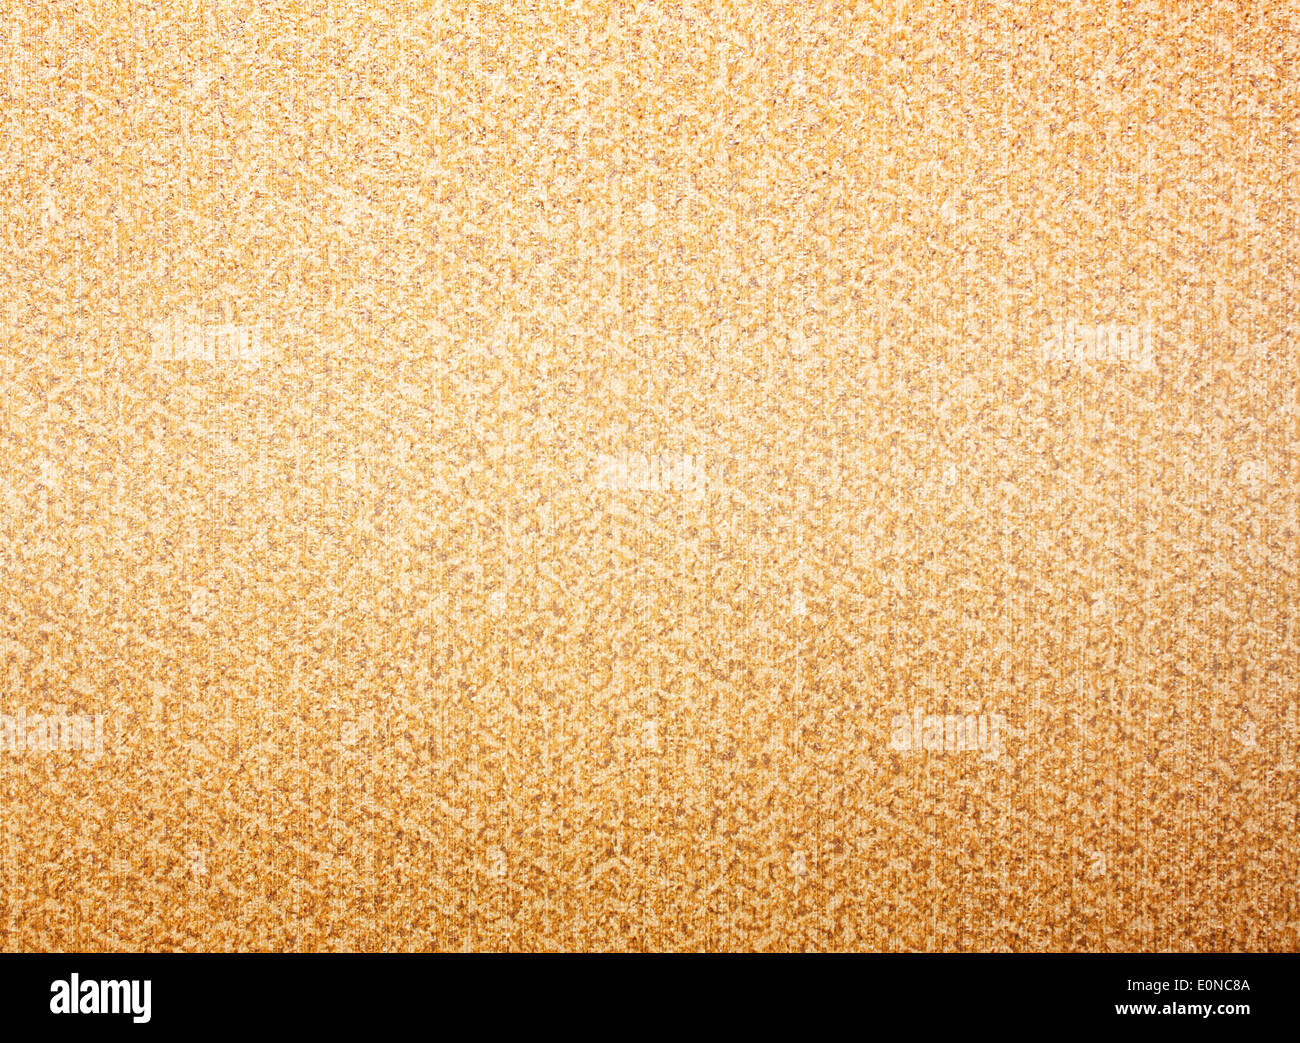 Wallpaper Vintage Shabby Background With Classy Patterns